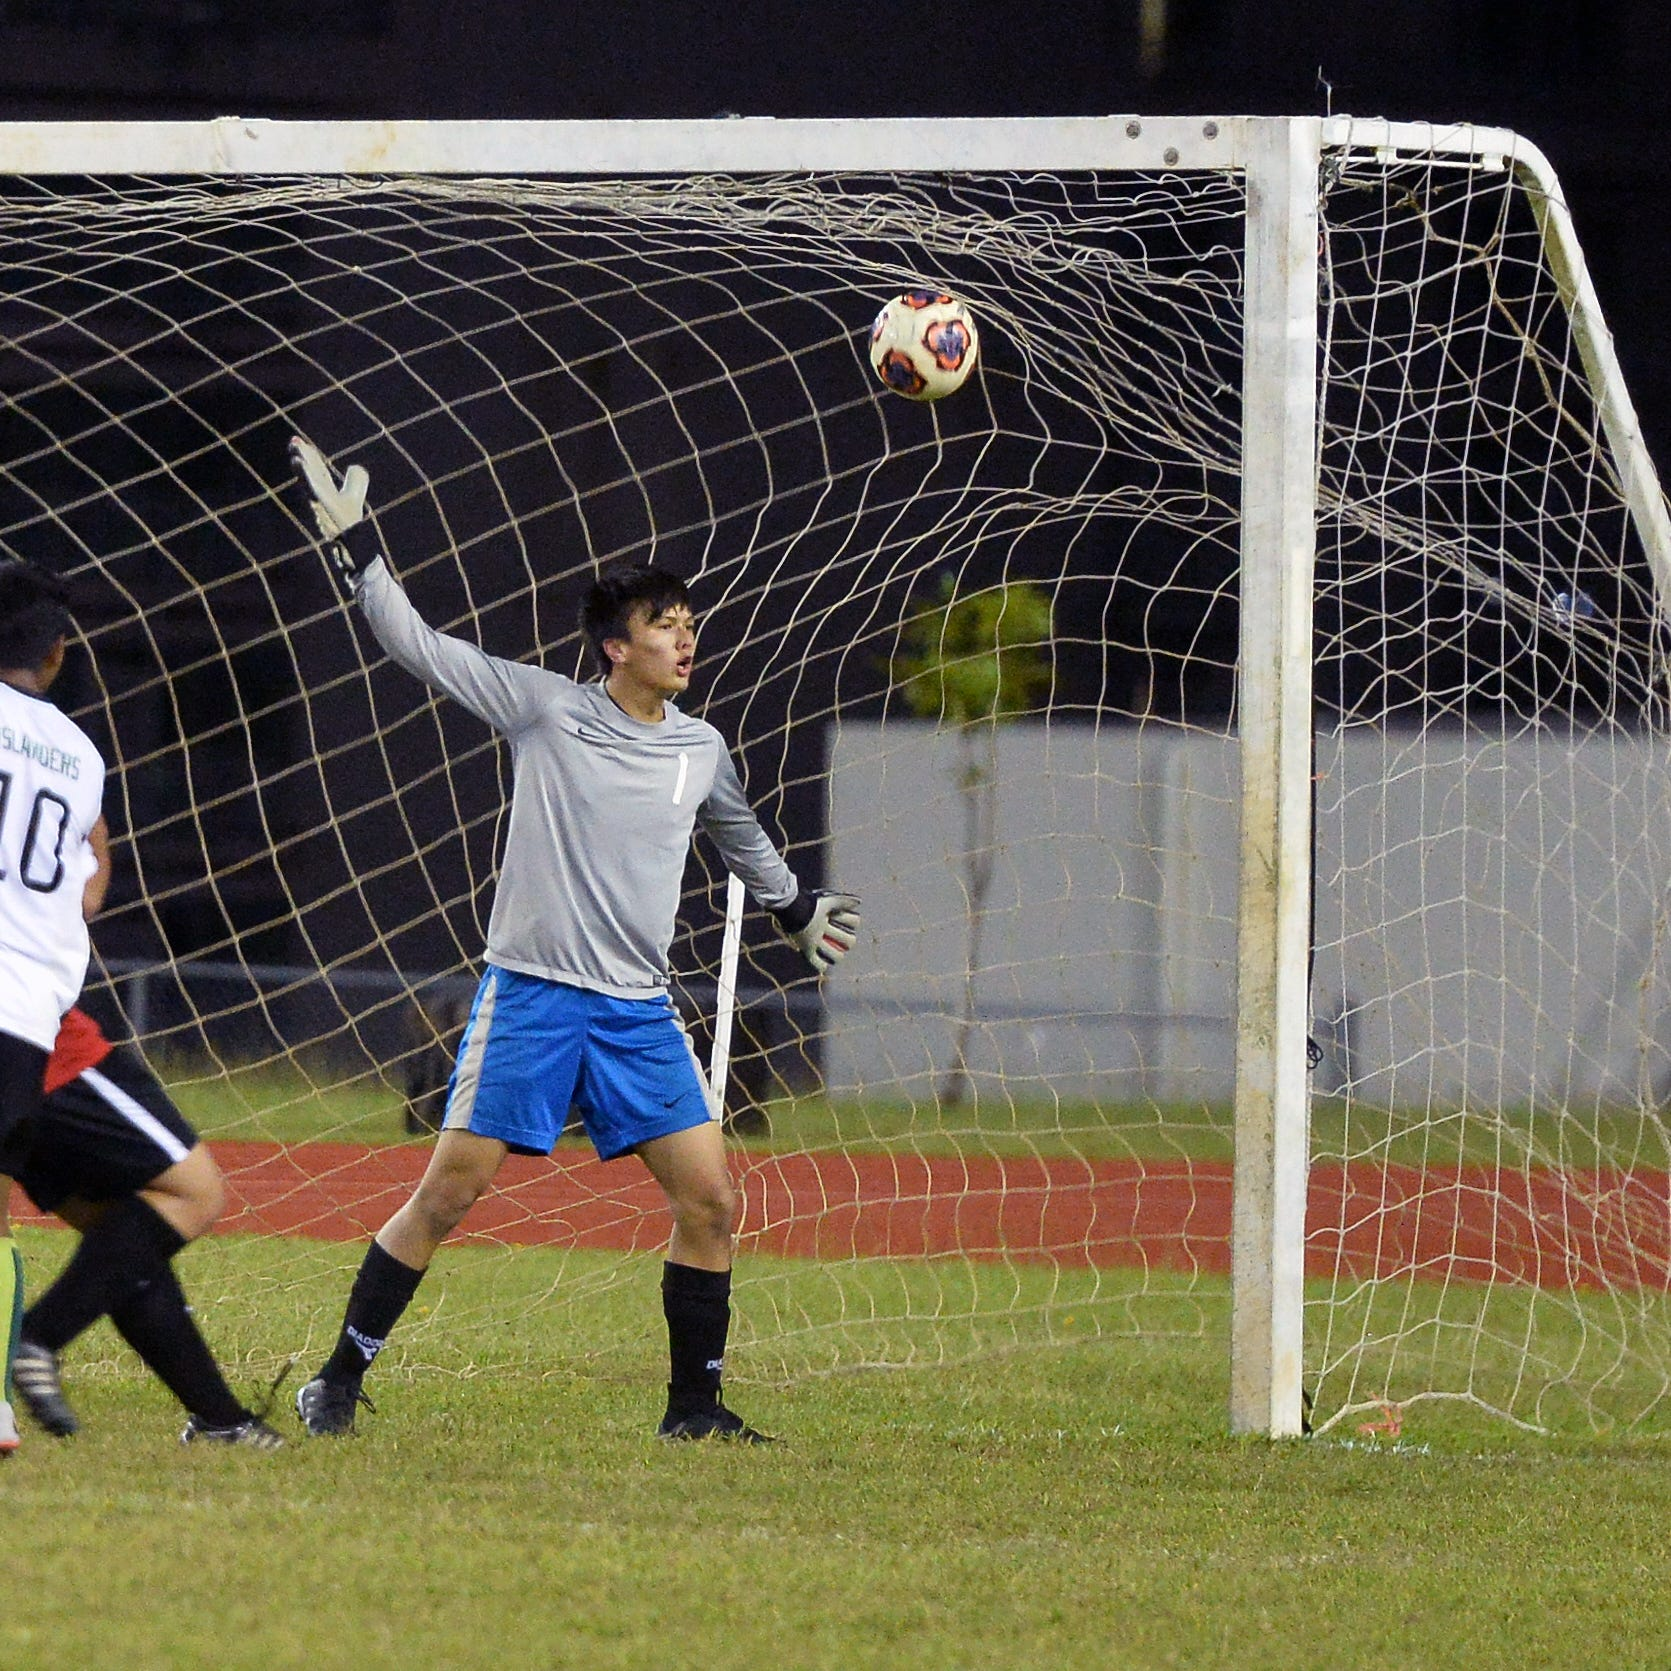 Islanders beat Knights 4-1, still perfect in boys soccer